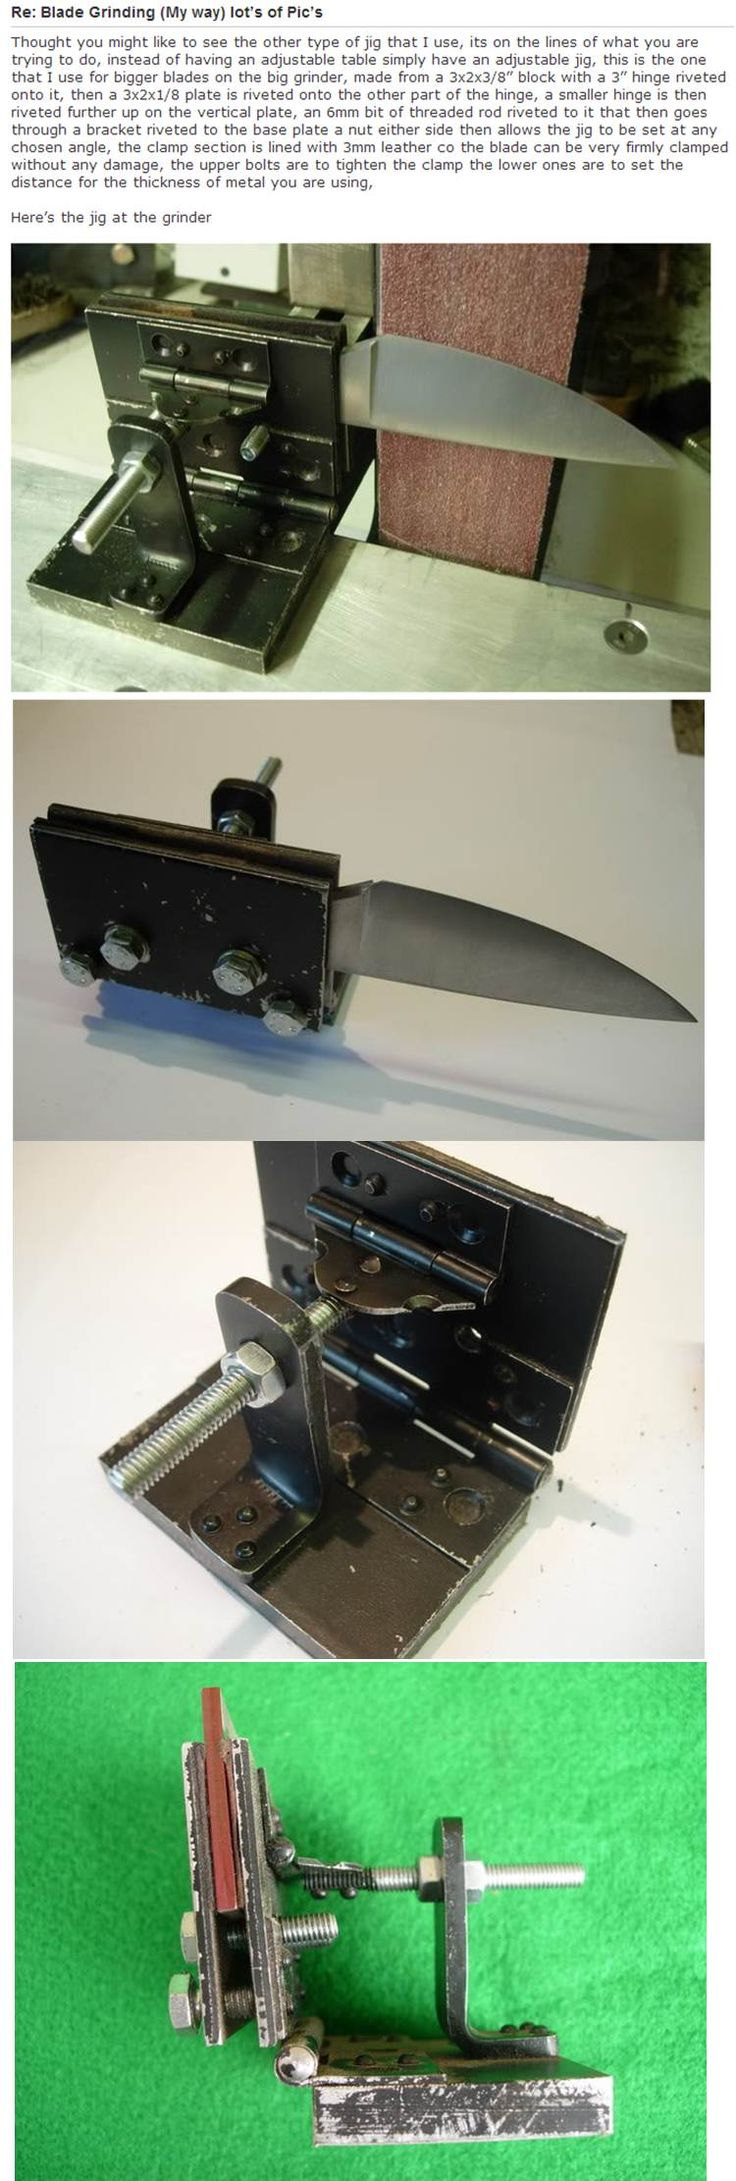 DIY knife grinding jig - made from hinges, steel plate, and threaded rod. Source: http://www.britishblades.com/forums/showthread.php?35912-Blade-Grinding-(My-way)-lot%92s-of-Pic%92s&s=01086819f84978b70408cd2d0f1583f6&p=547125